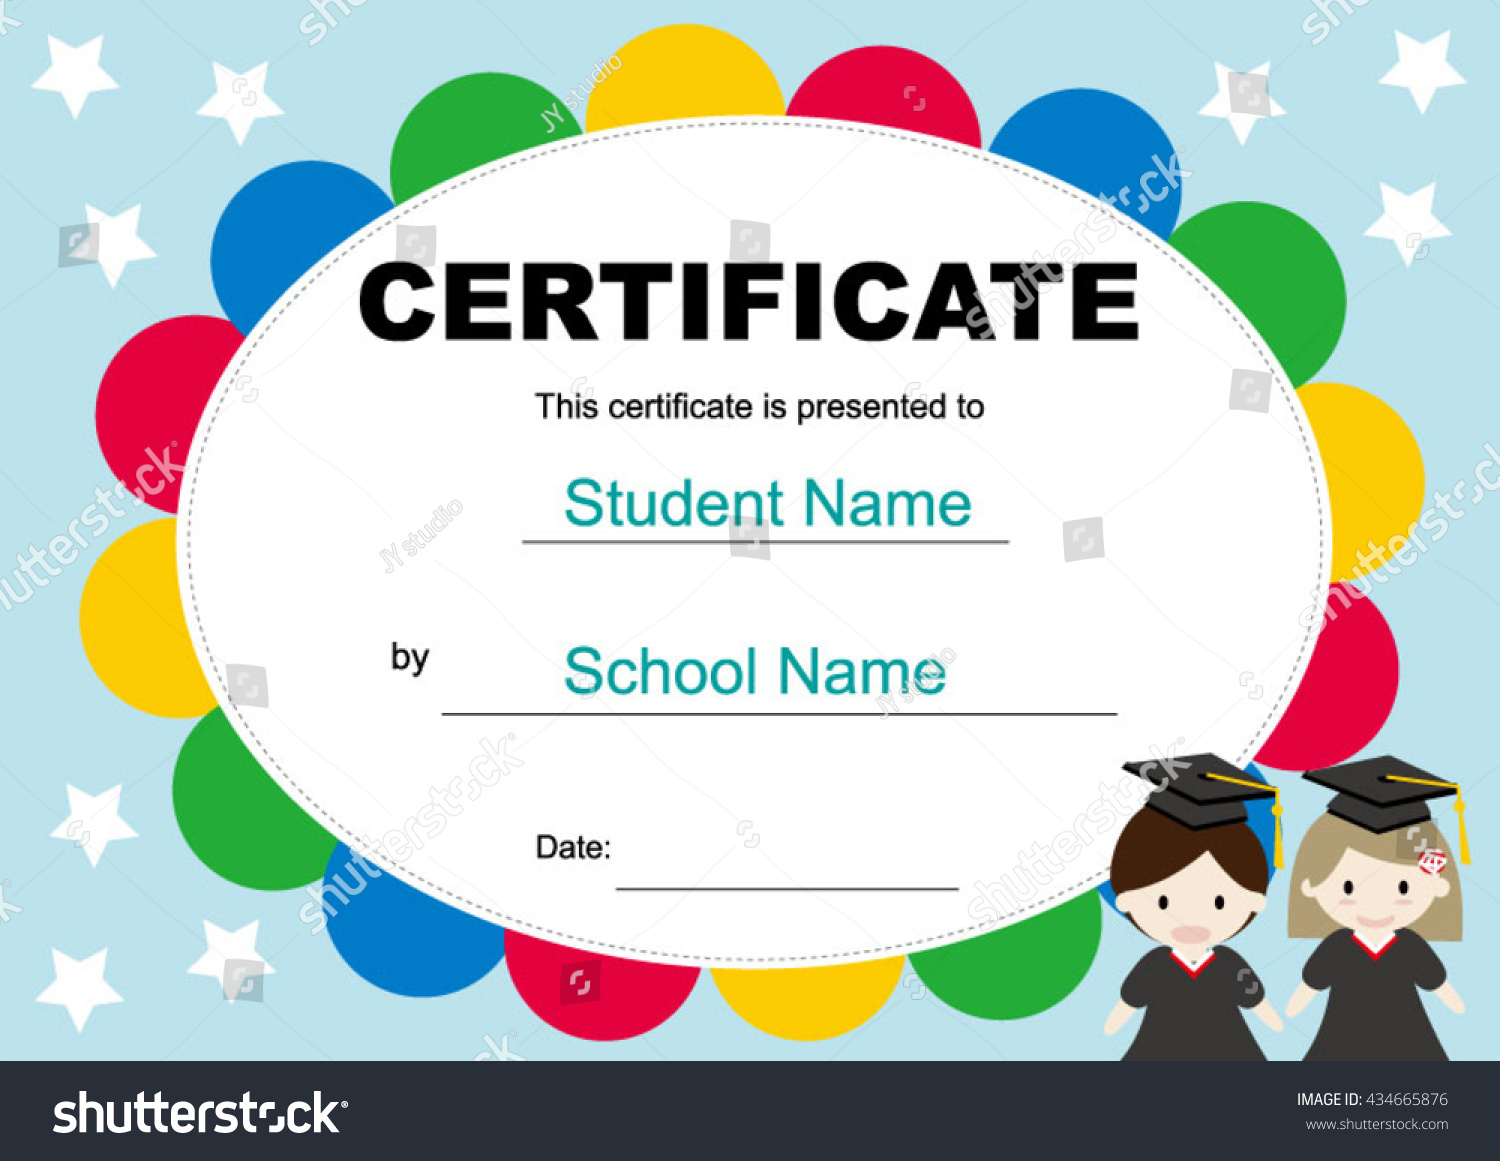 Royalty Free Certificate Of Graduation For 434665876 Stock Photo